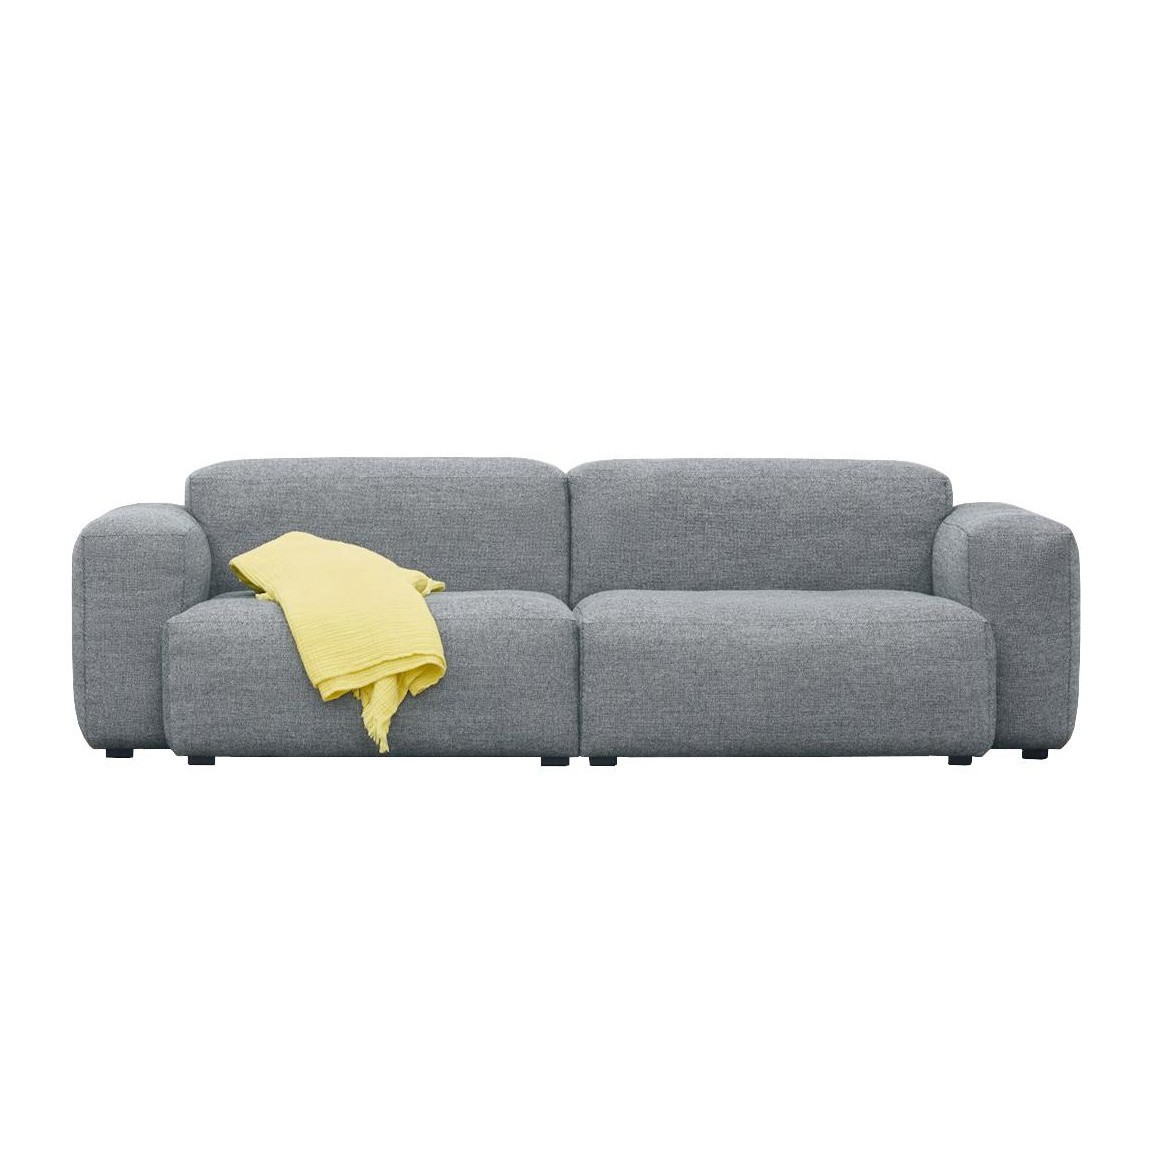 Hay Mags Soft 2 5 Seater Sofa Low